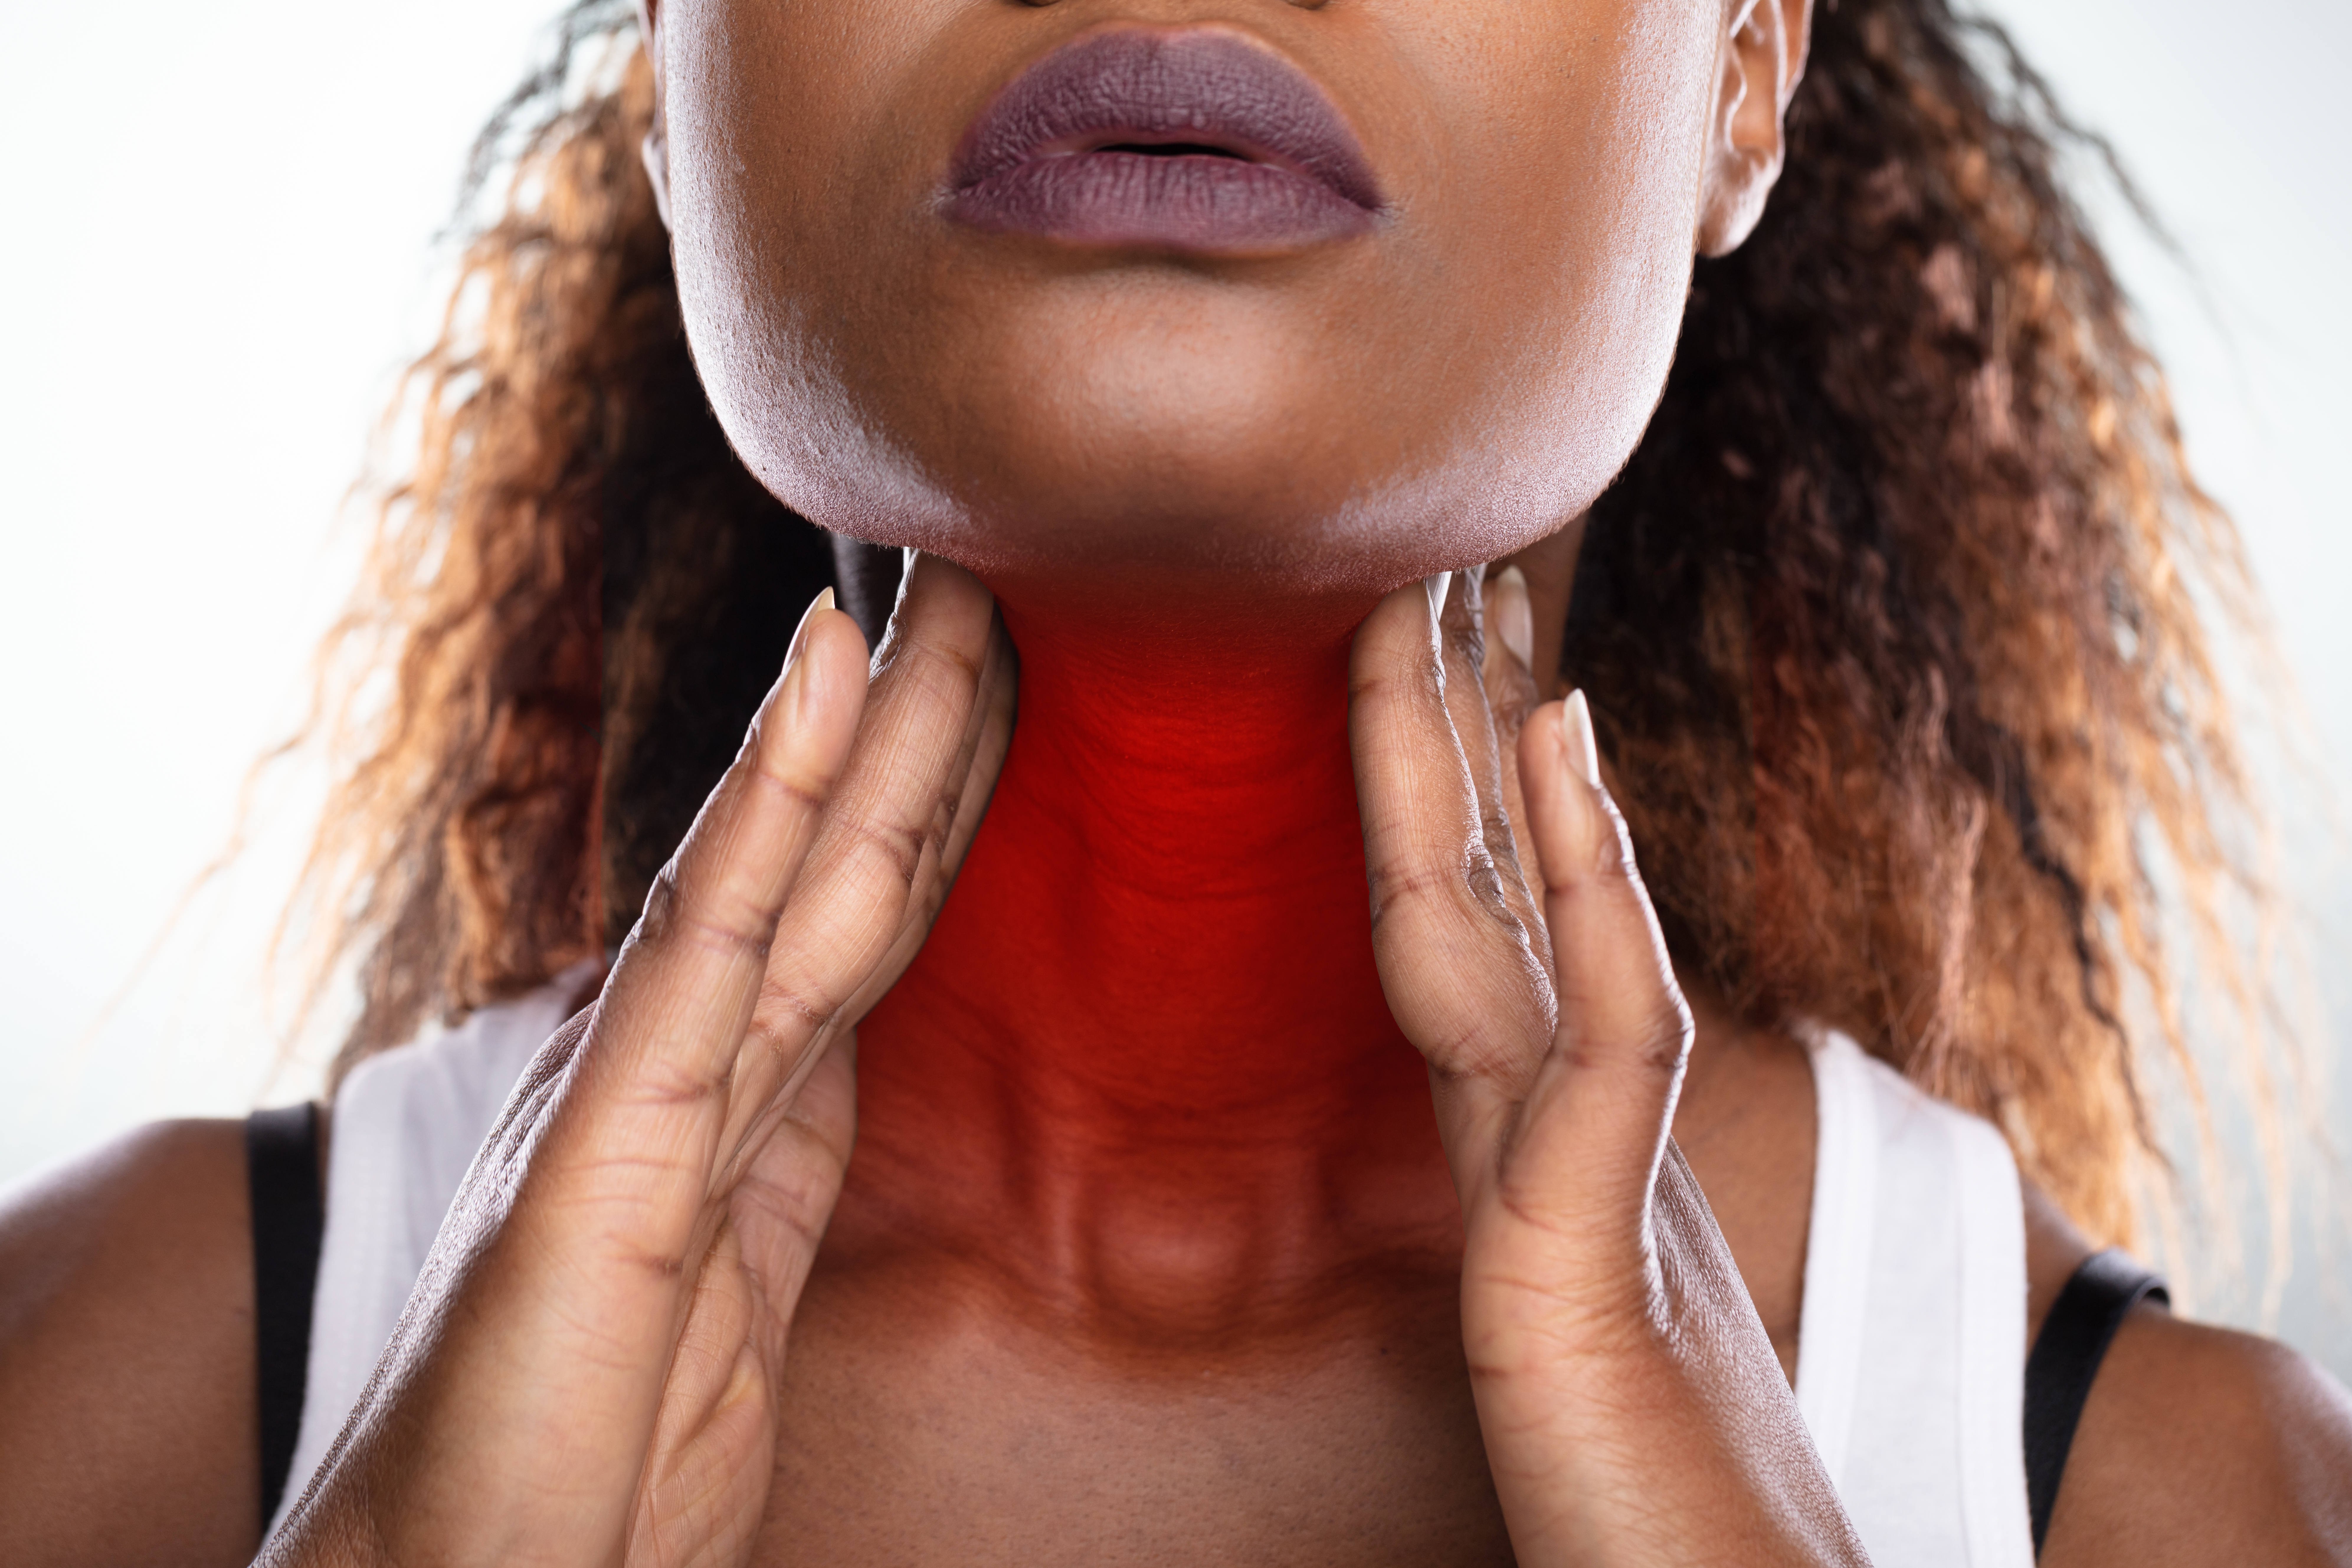 Coughing, Lump or Pain in the Throat: It's LPR